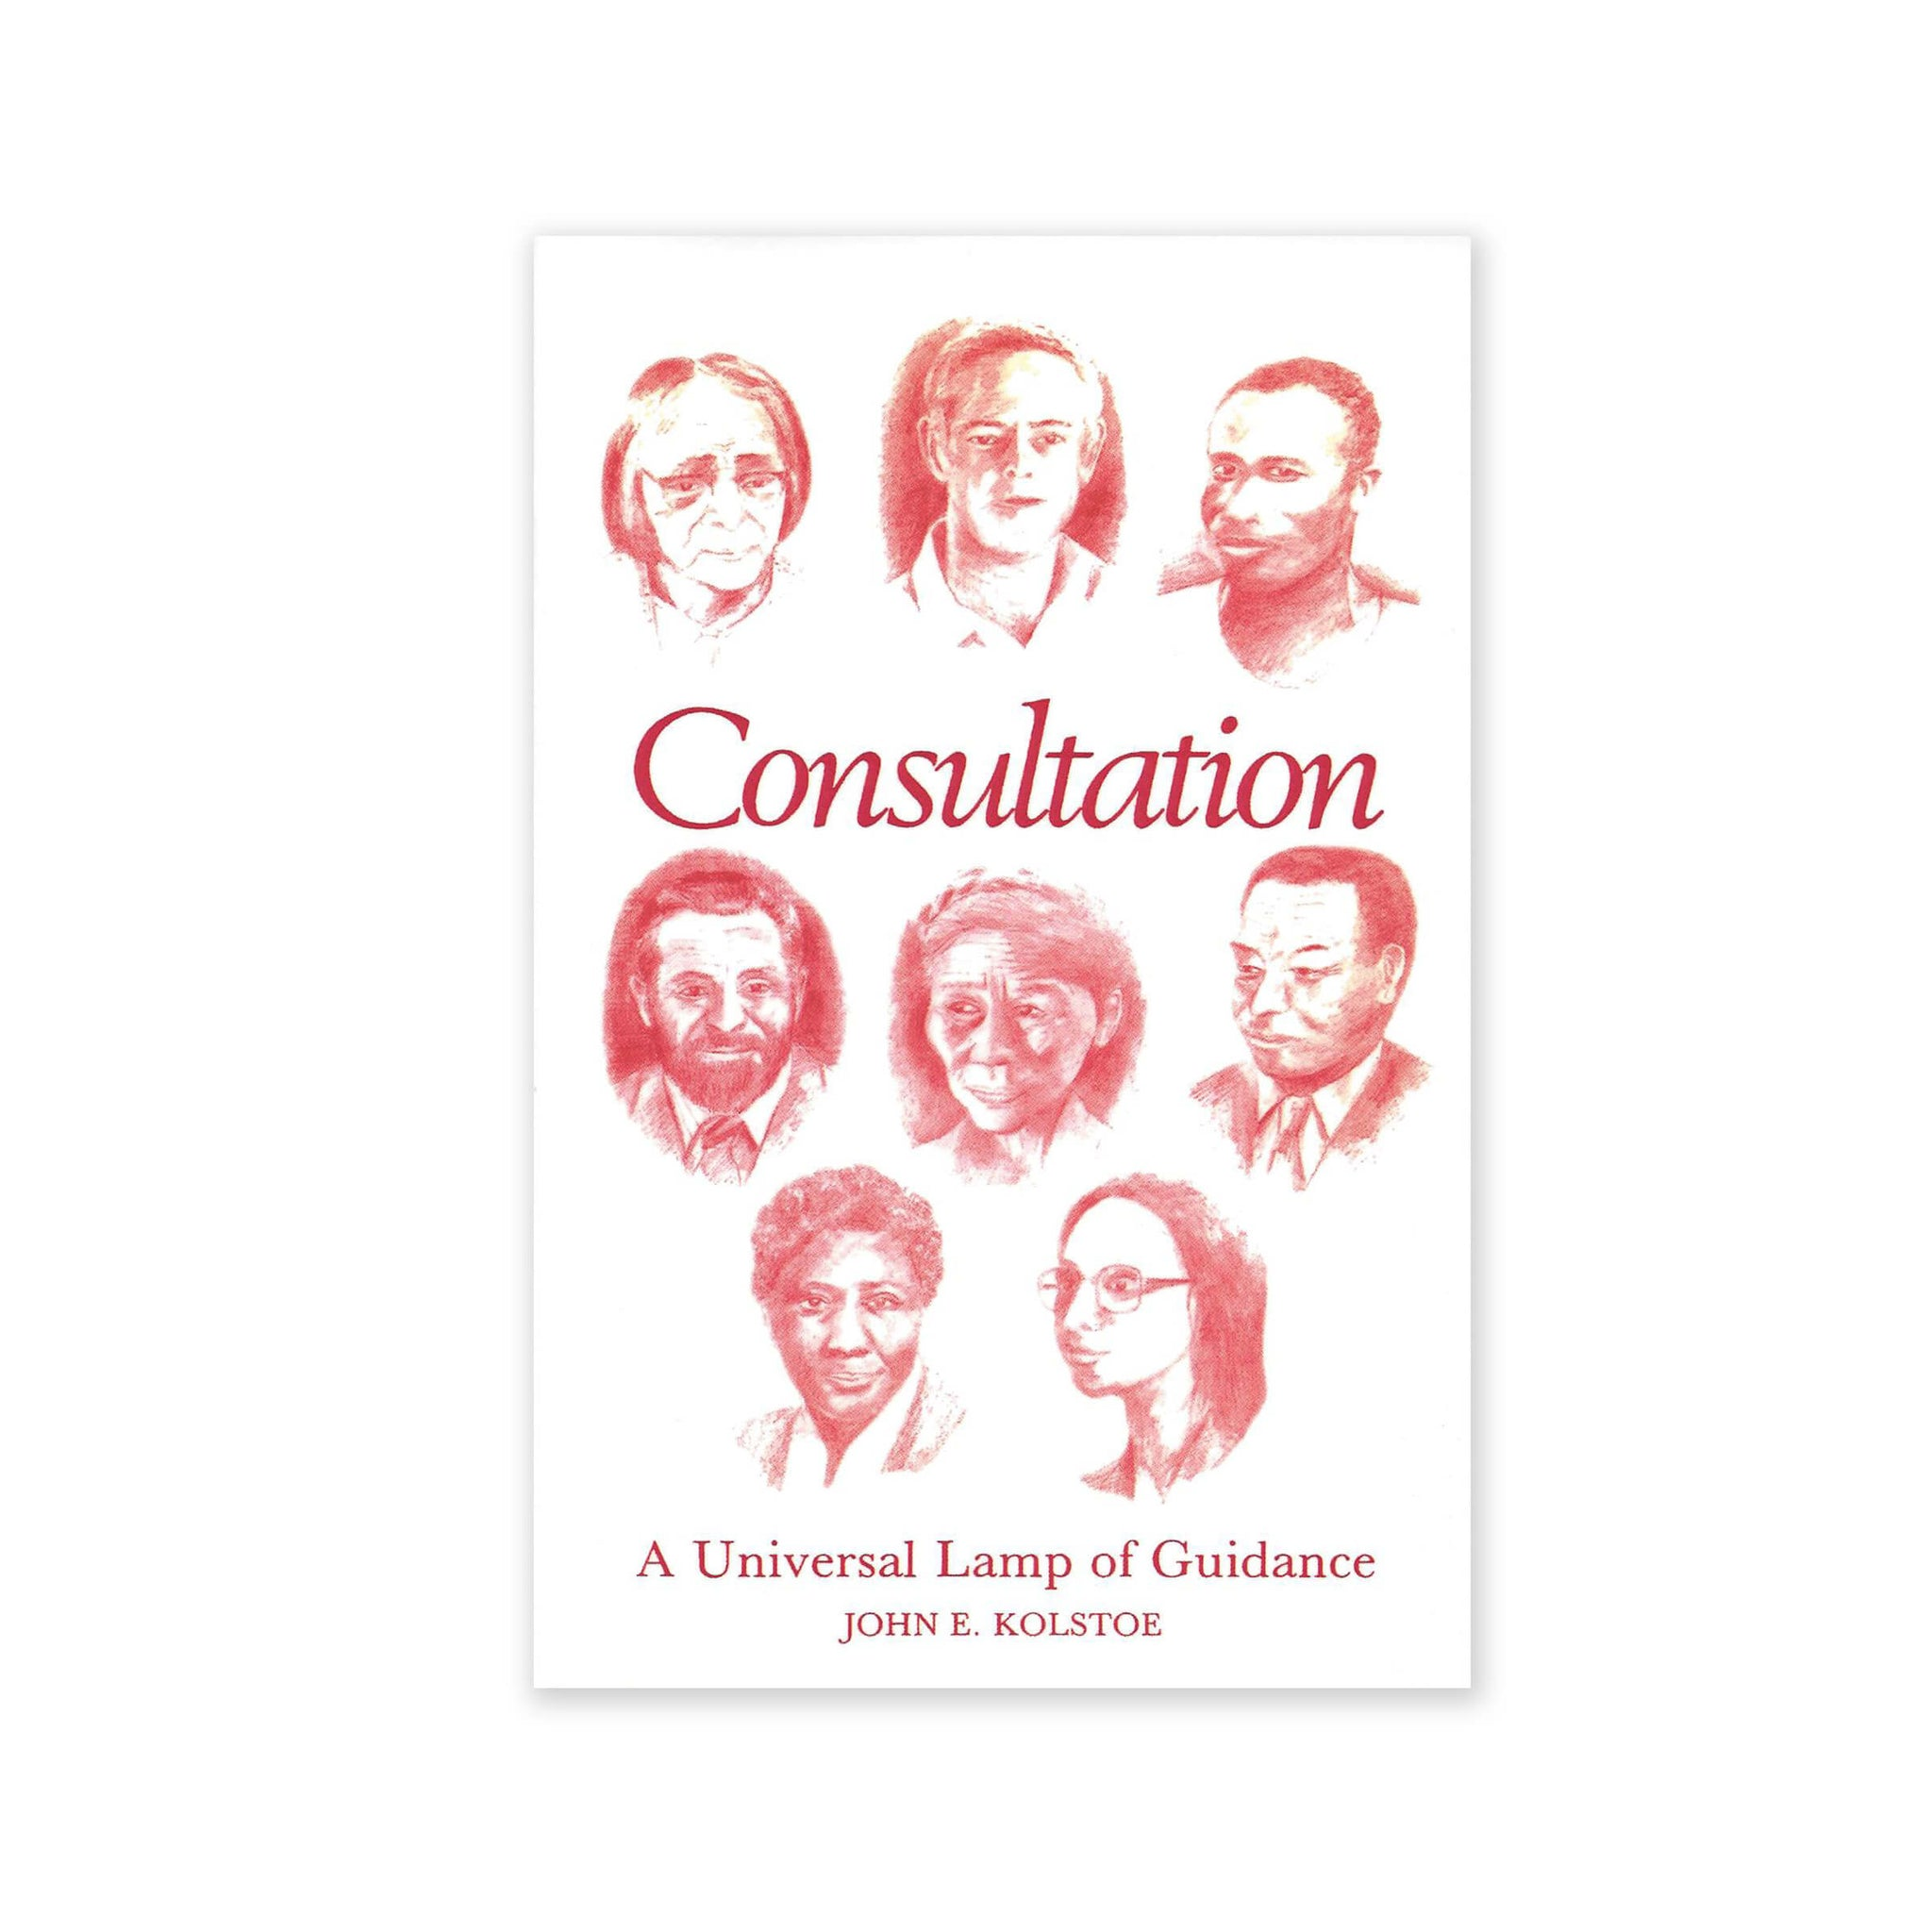 Consultation - A Universal Lamp of Guidance